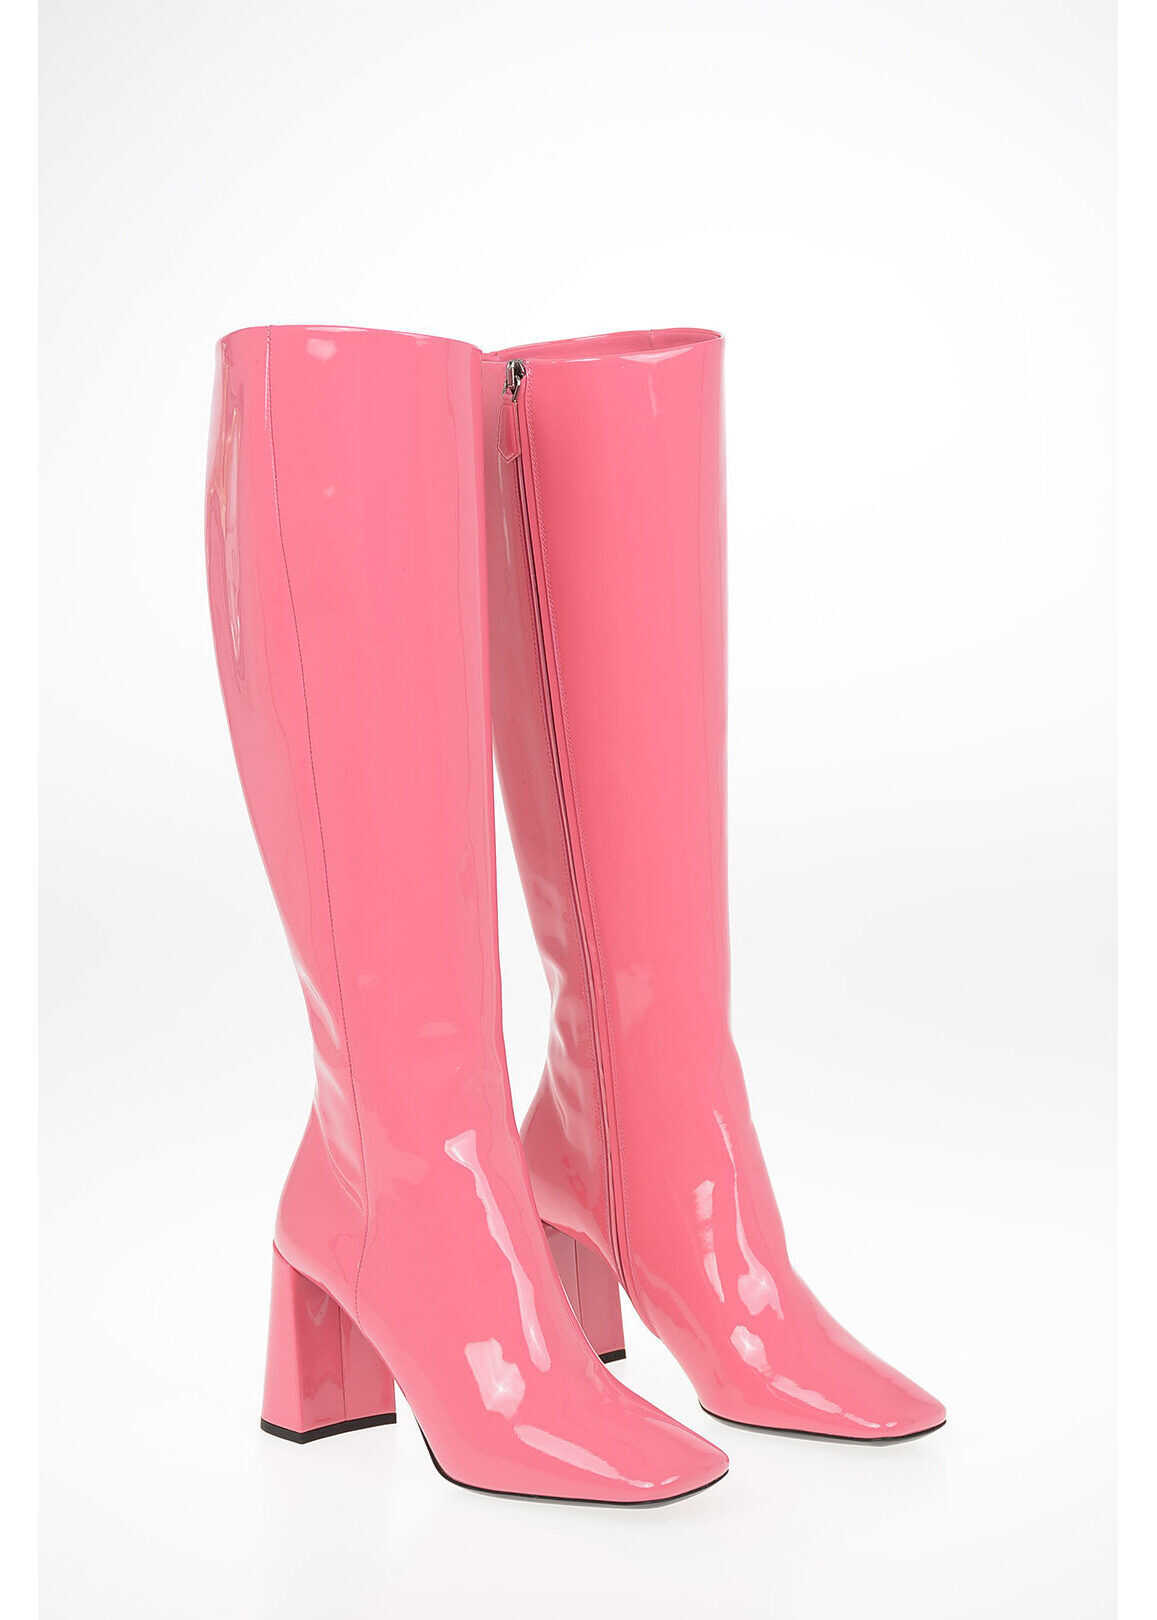 Prada Lacquered Leather Knee Length Boots 9 cm PINK imagine b-mall.ro